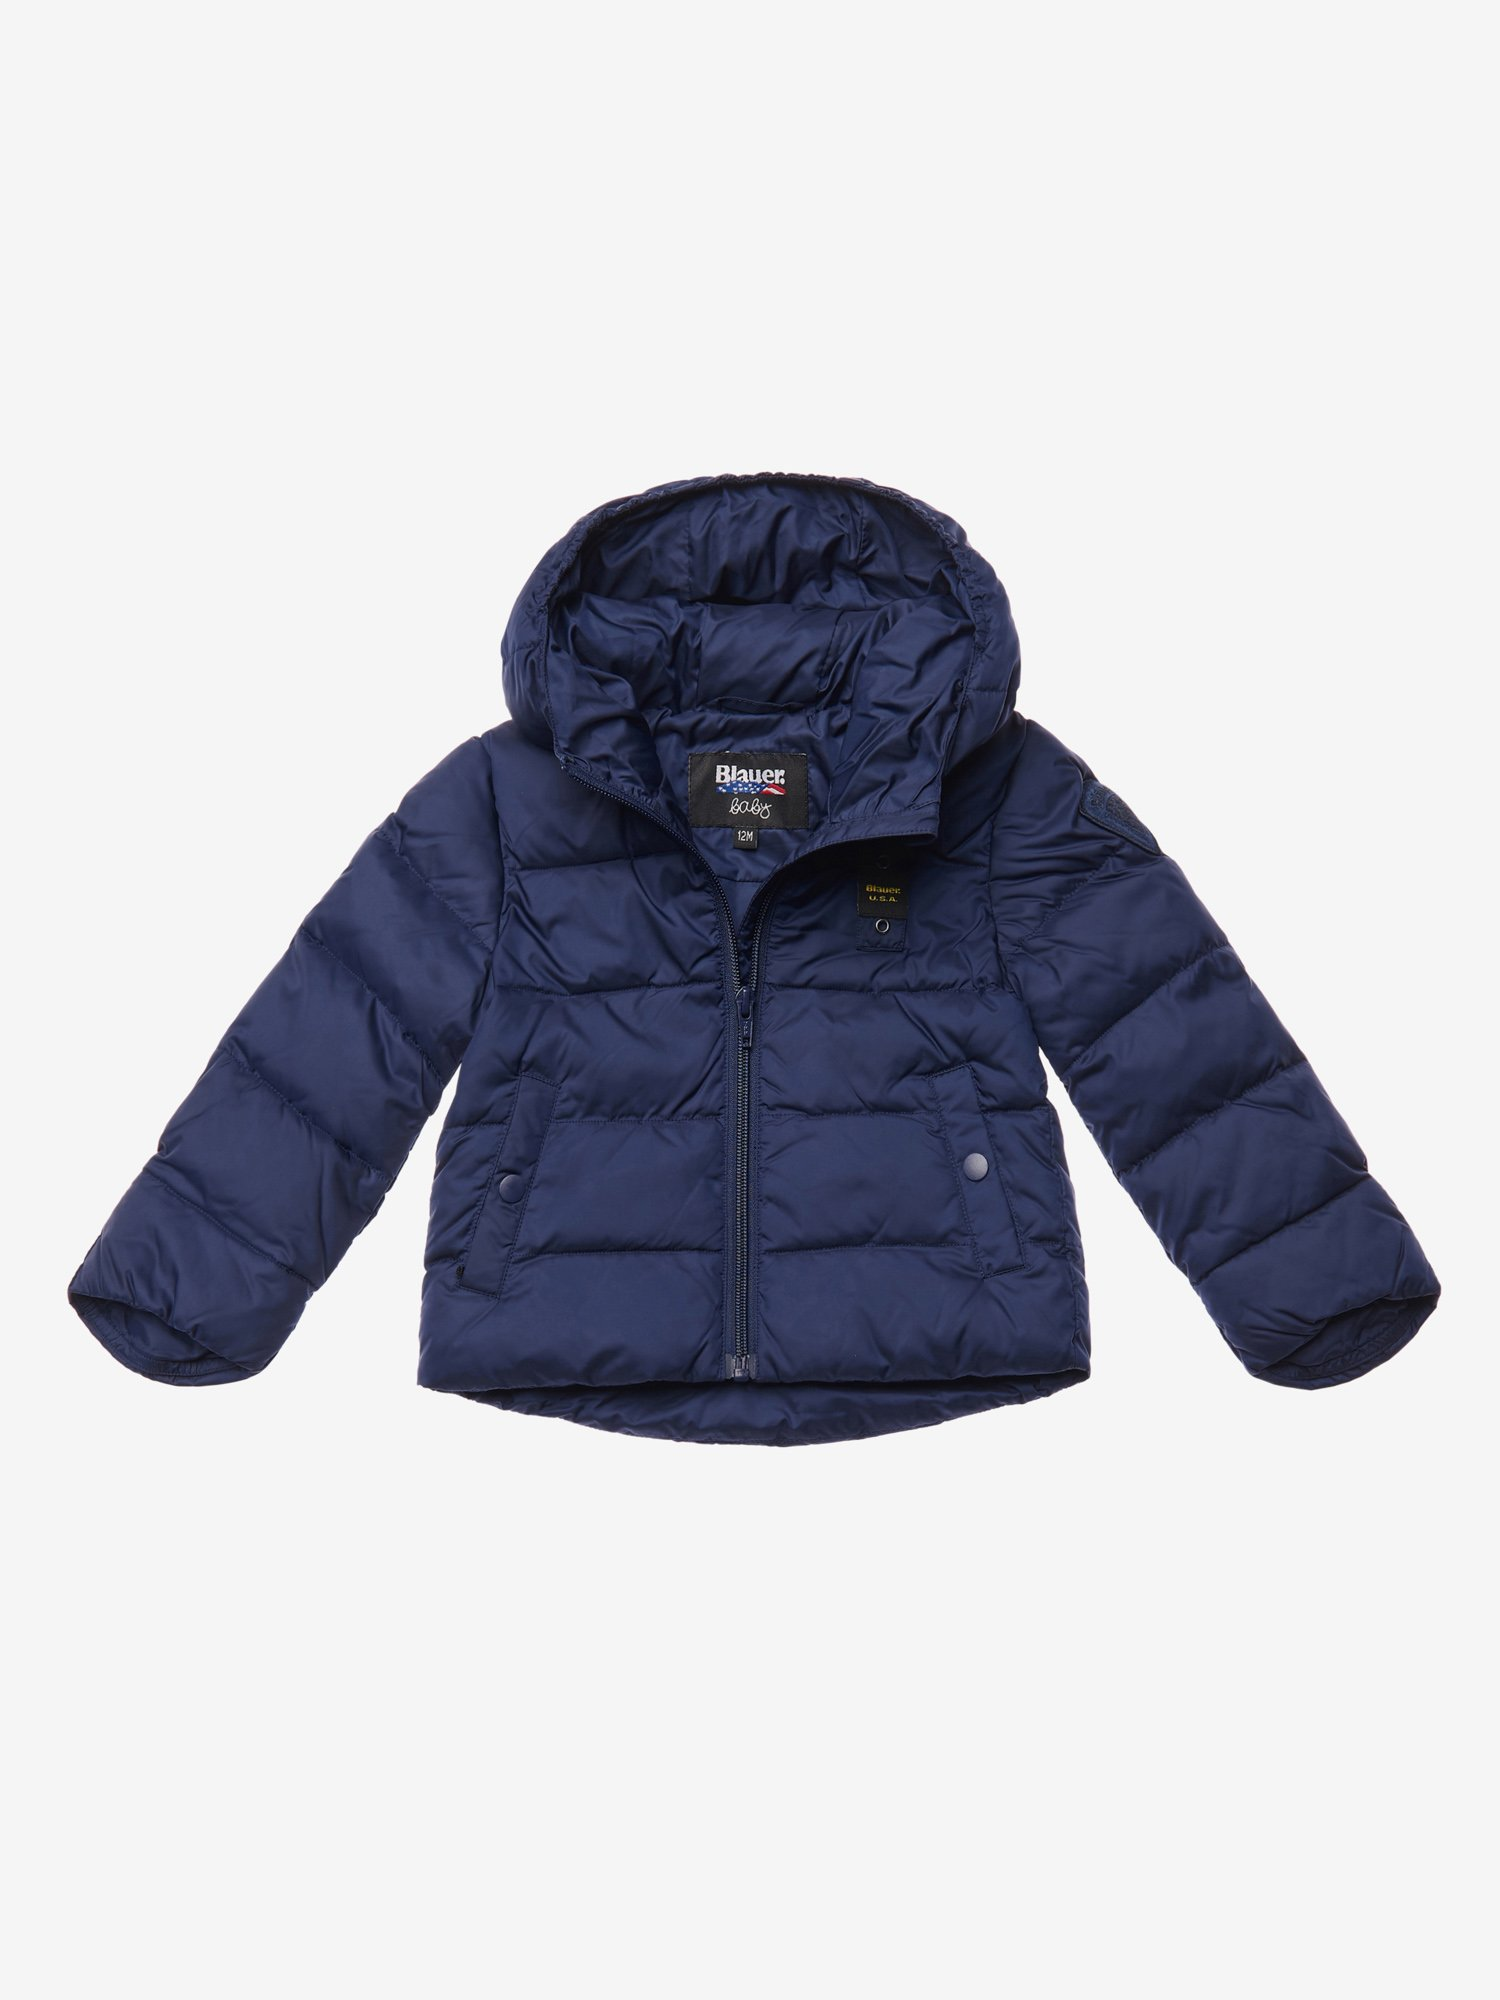 NICHOLSON BABY DOWN JACKET WITH HOOD - Blauer